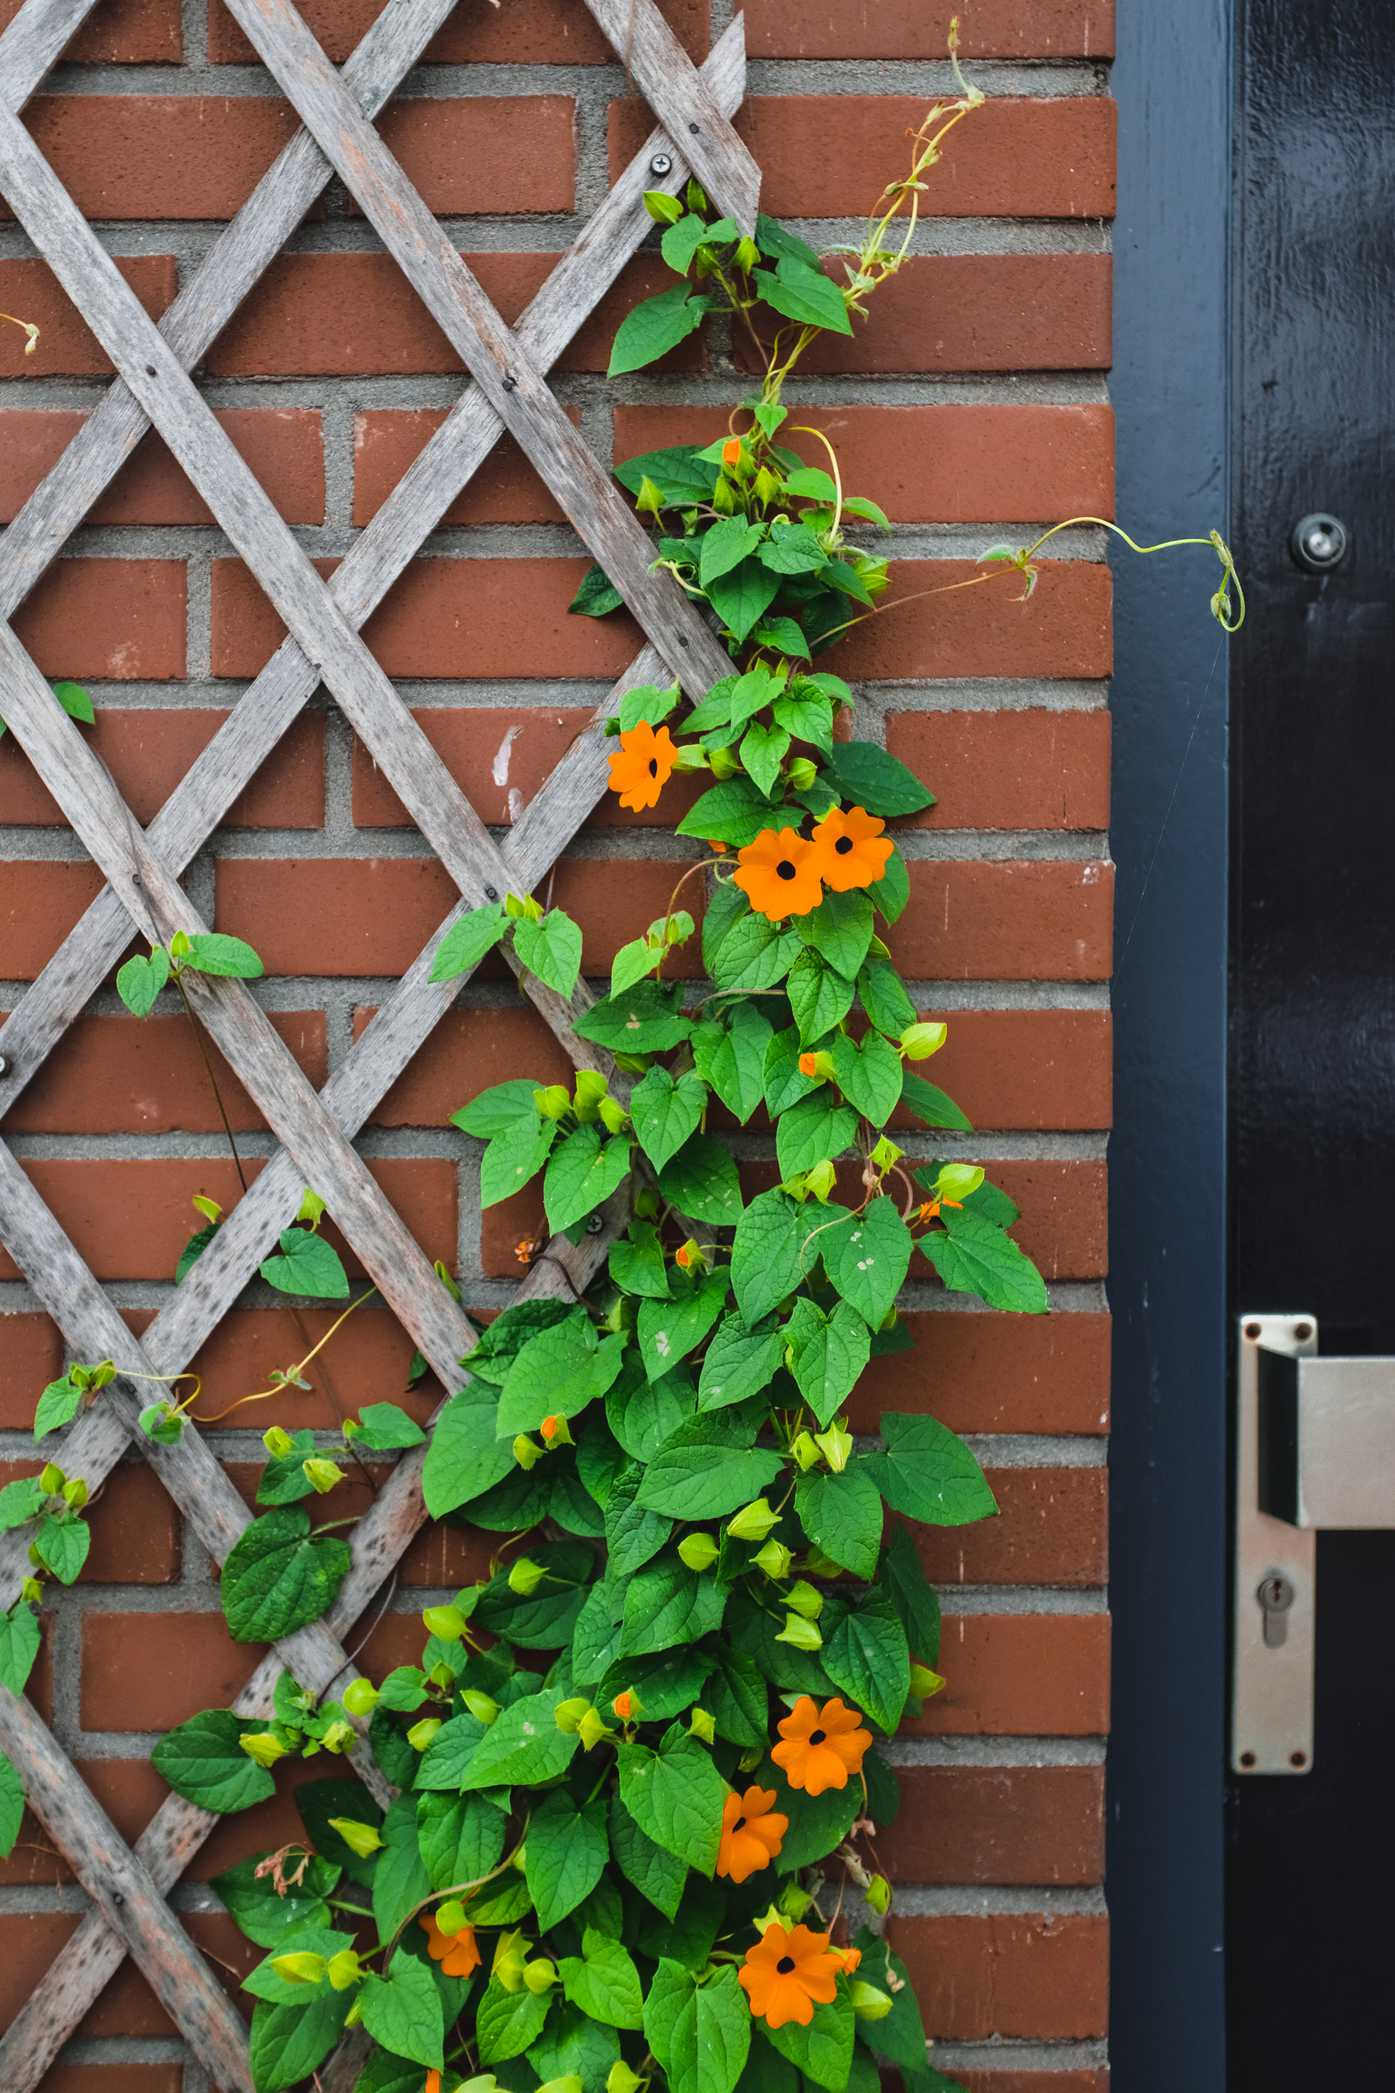 Vine with flowers climbing a trellis